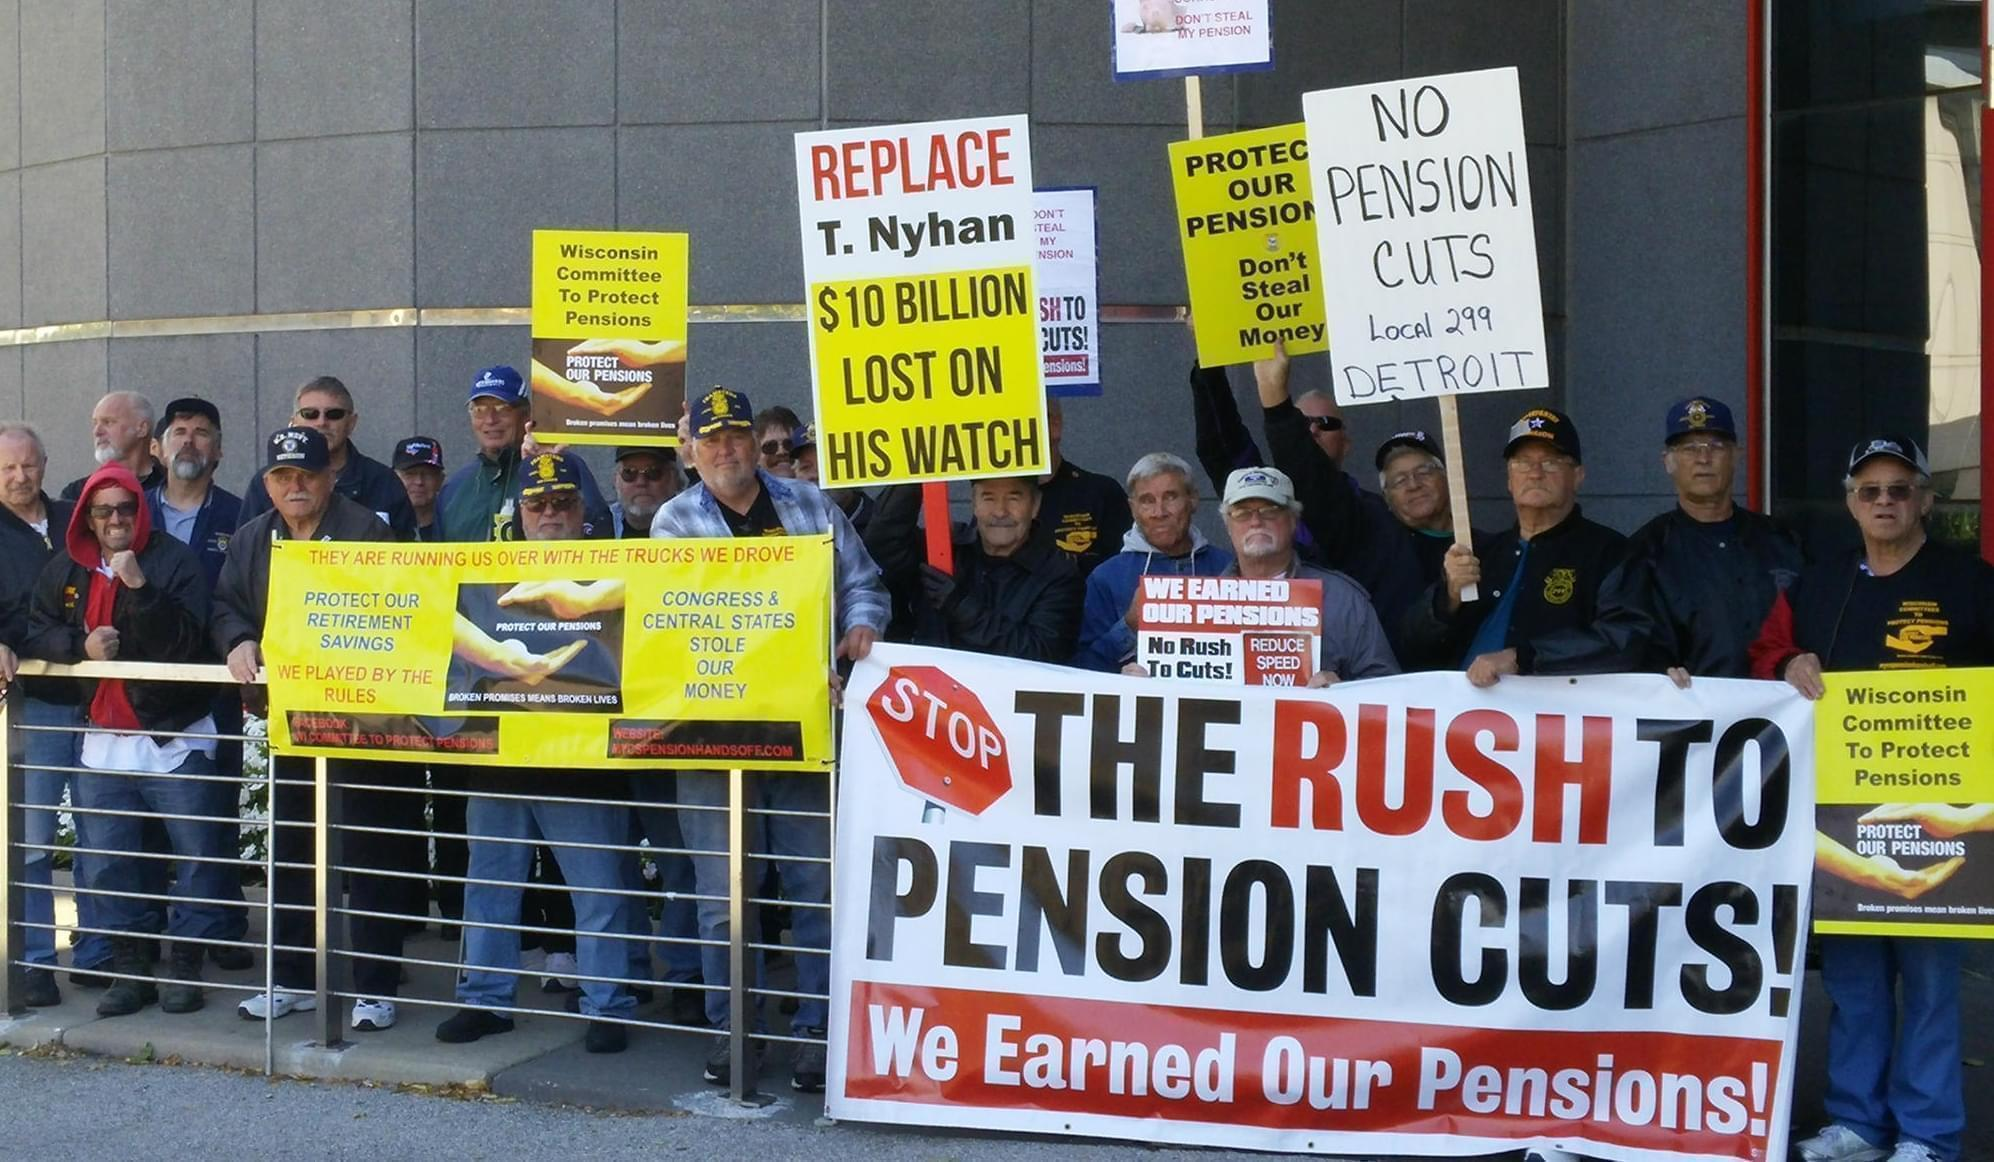 Opponents of the pension rescue plan demonstrate outside a meeting of pension fund officials.